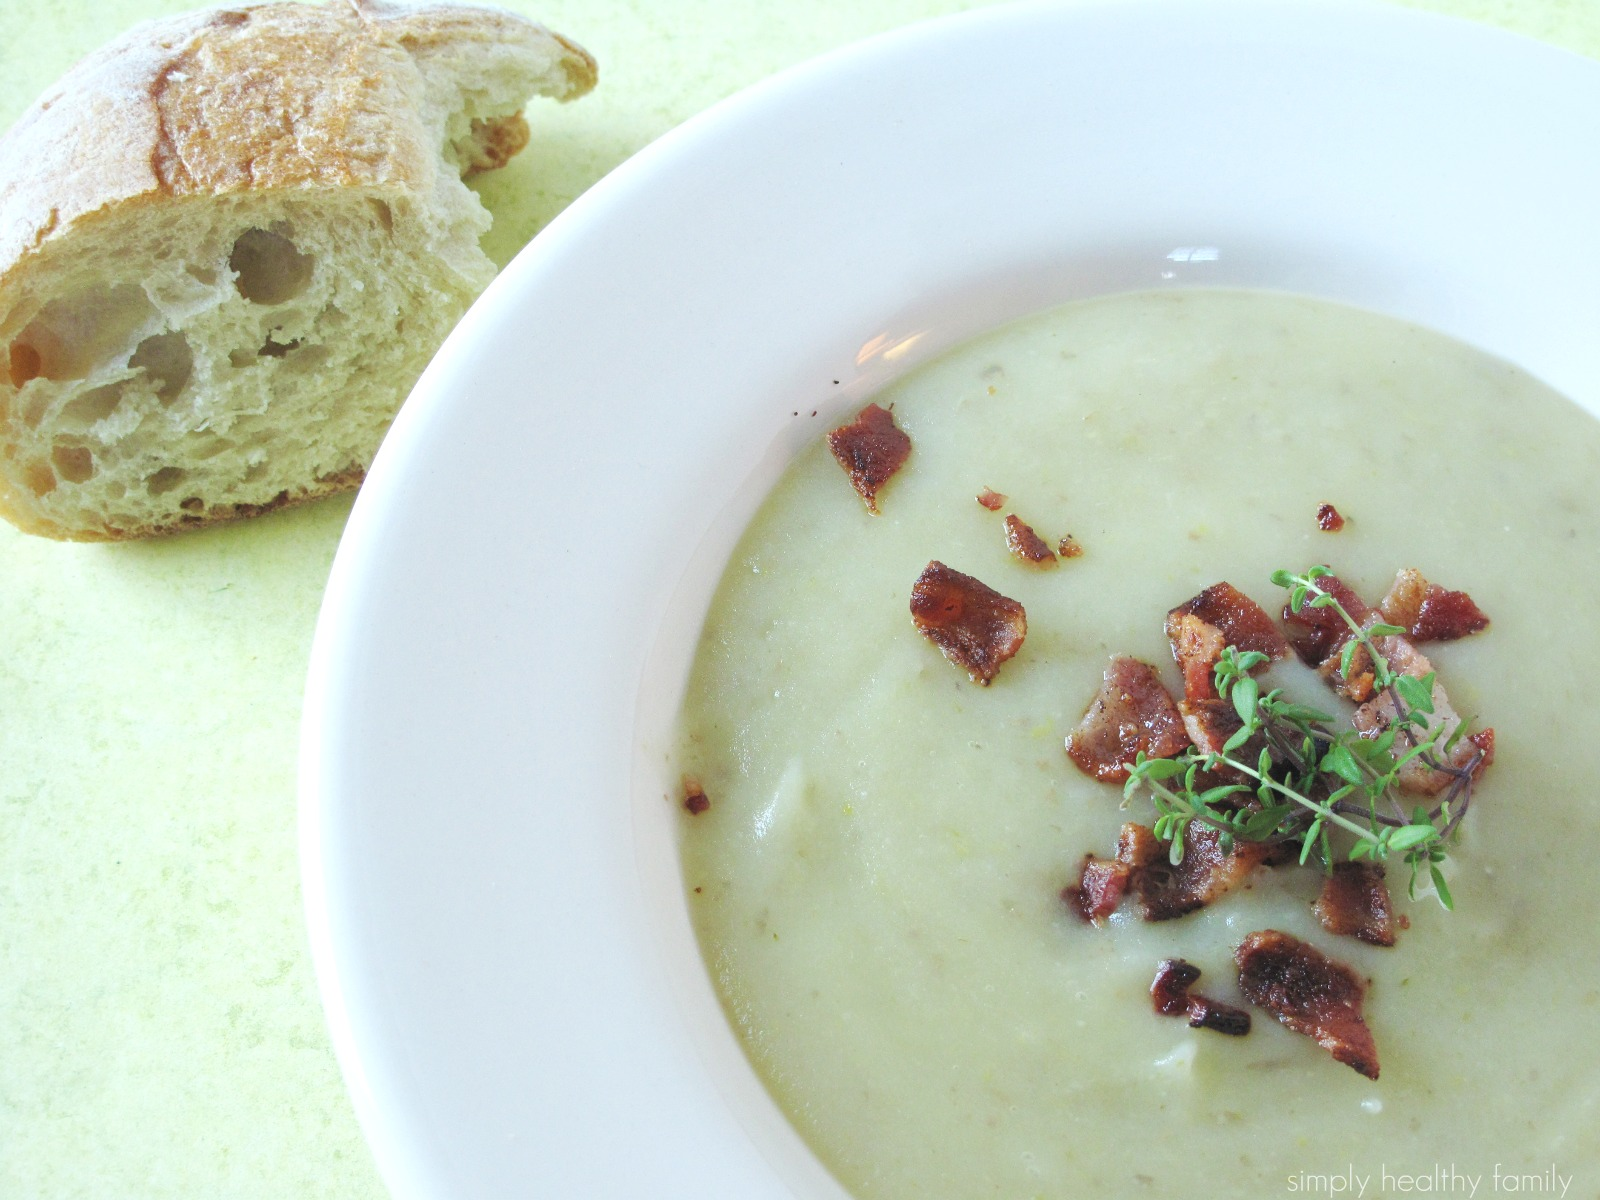 Simply Healthy Family: Potato Leek Soup Makeover